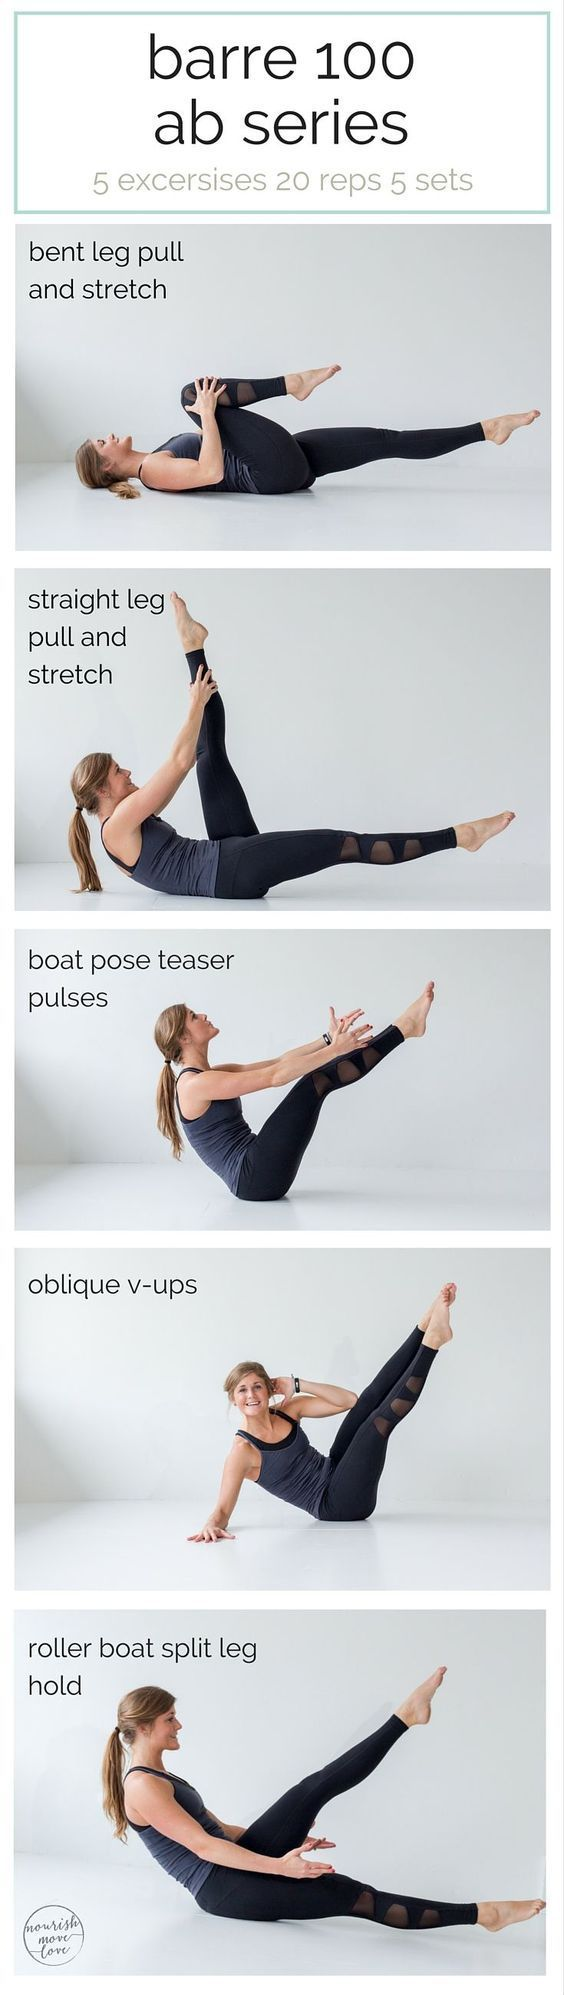 Barre 100 Ab Series. Perfect at-home workout!